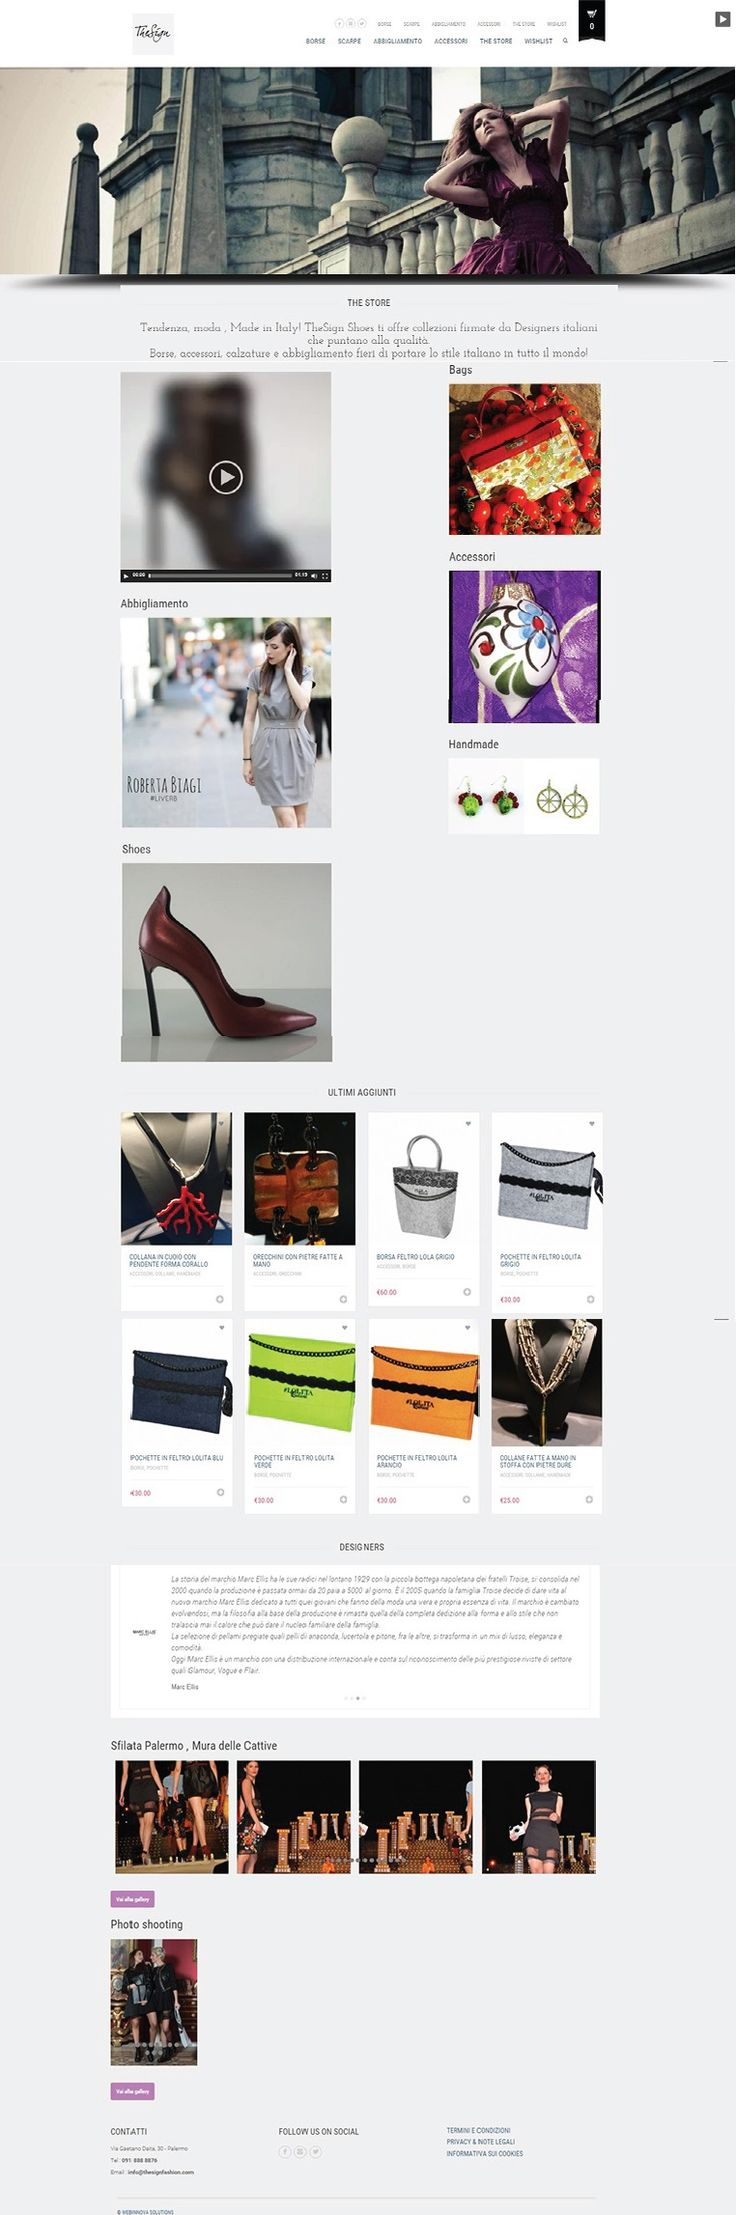 Sito #web realizzato con #Wordpress per The Sign Fashion #fashion